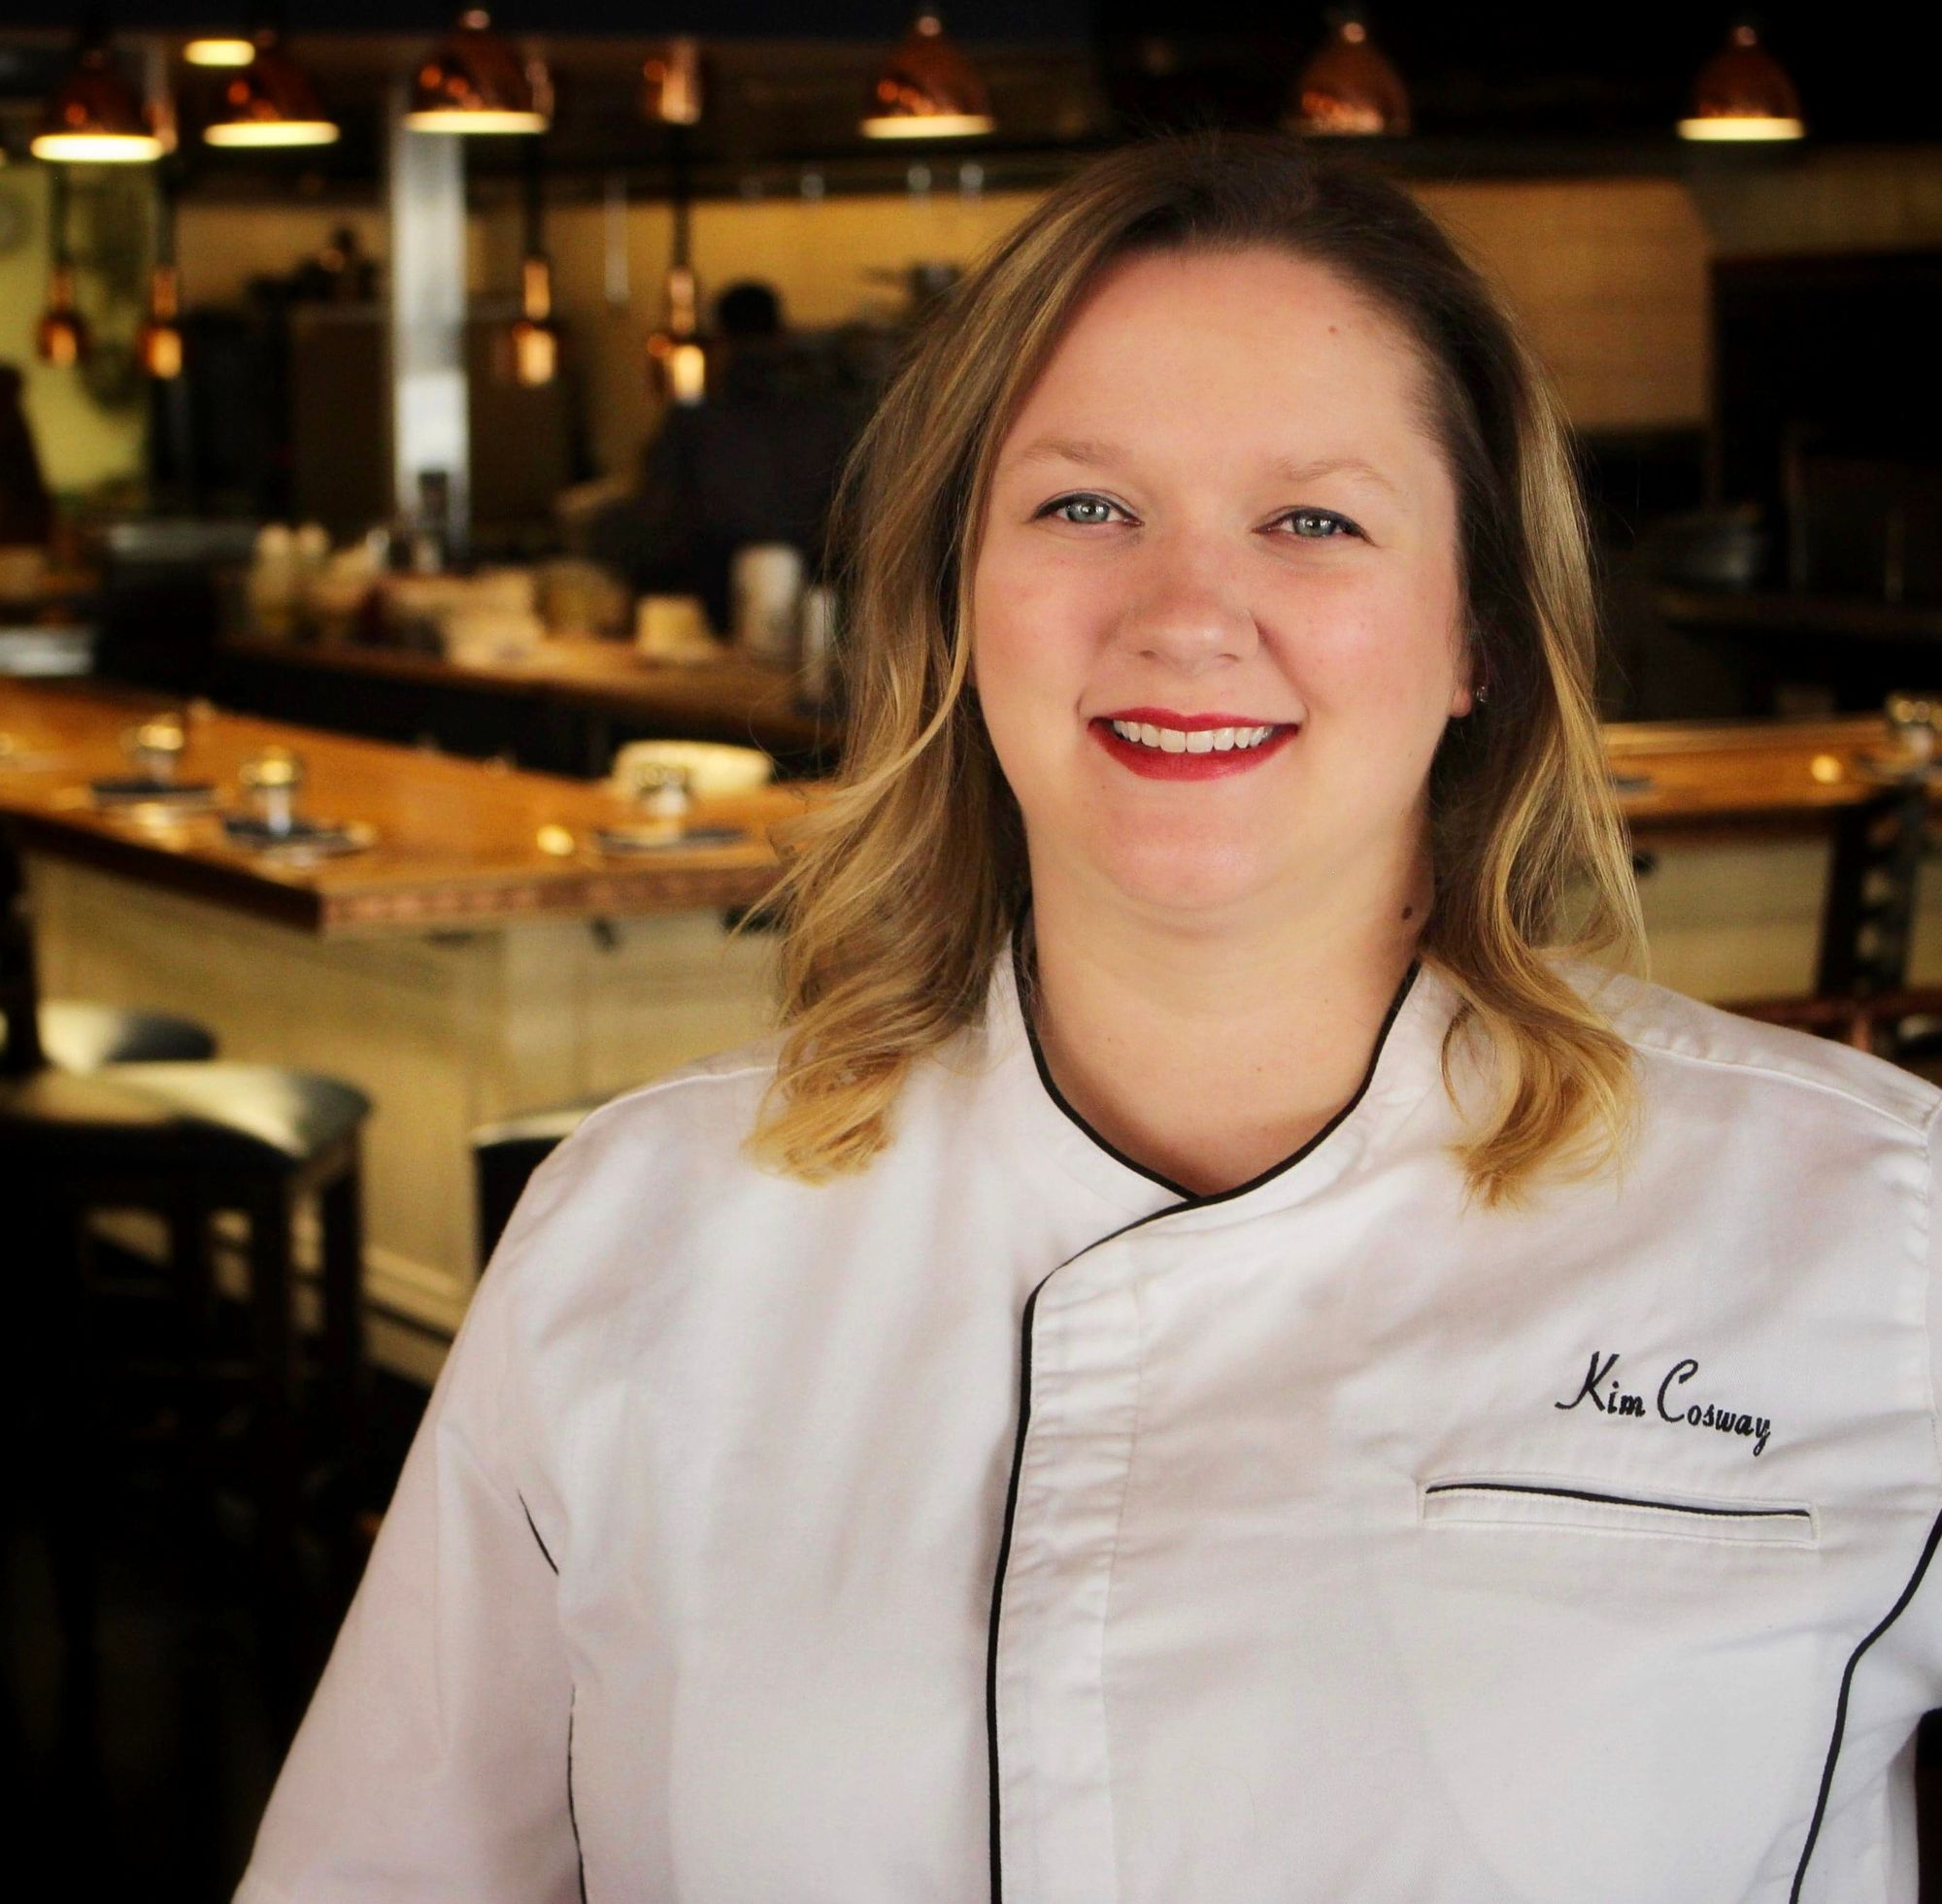 Picture of Chef Kimberley Cosway, The Executive Chef of Heartwood Provisions in Seattle.